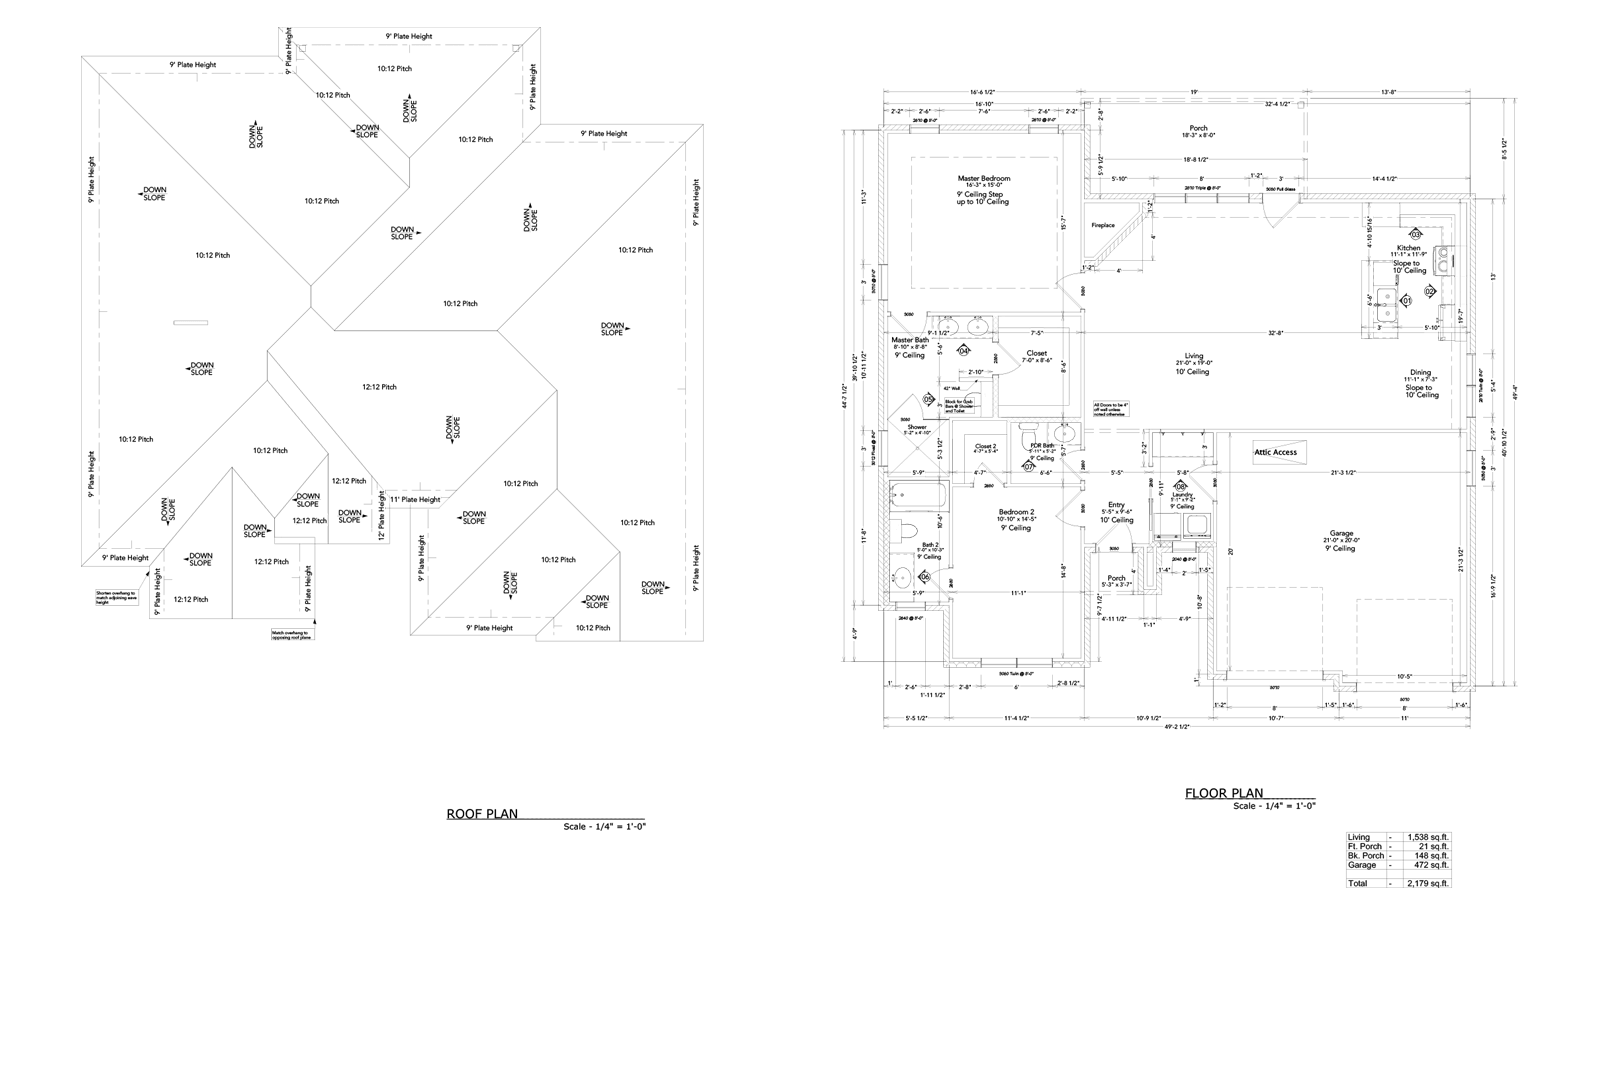 Oasis Roof and Floor Plan